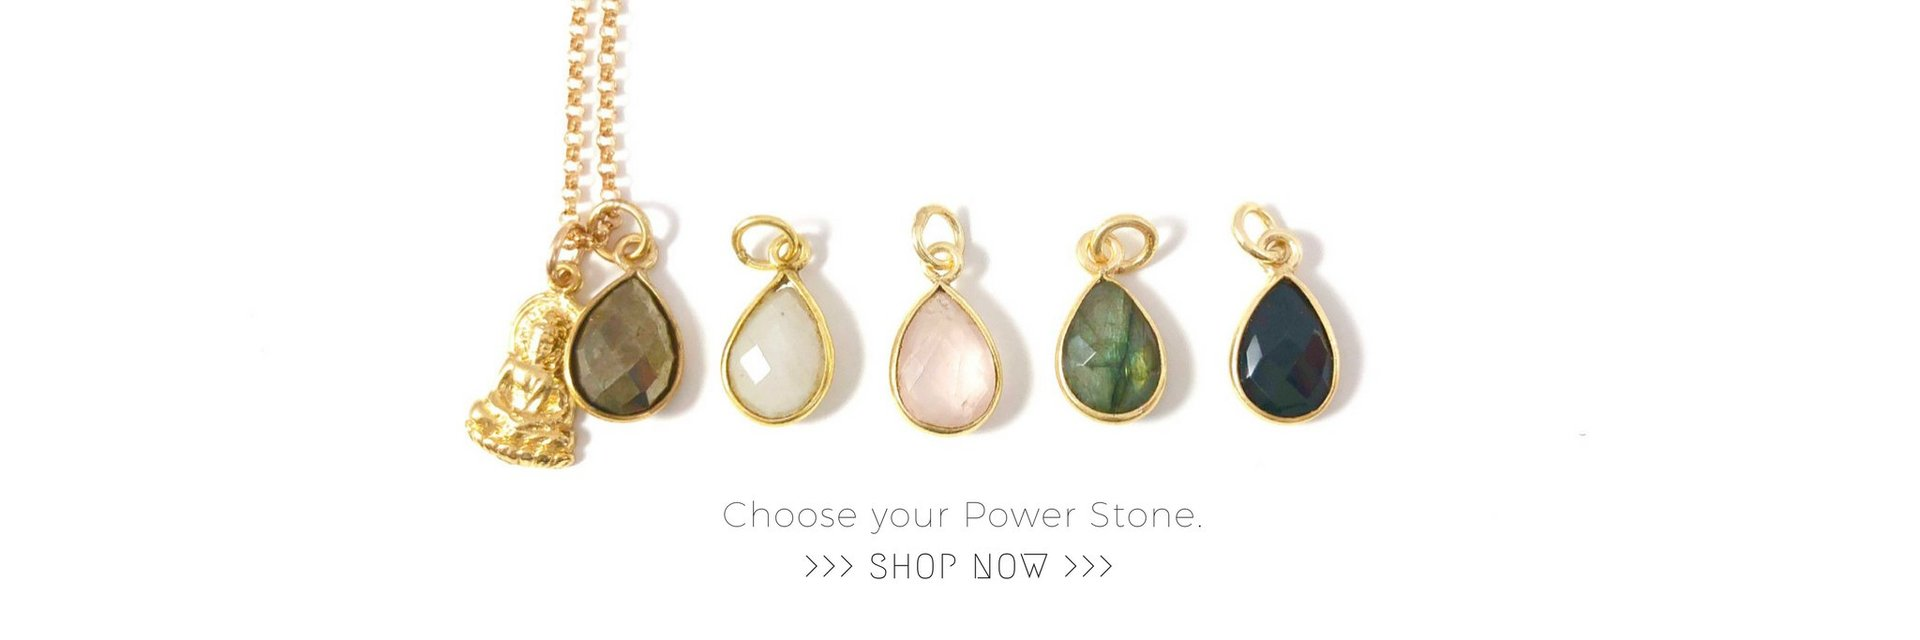 PANGARI-JEWELRY-GEMSTONES-BANNER